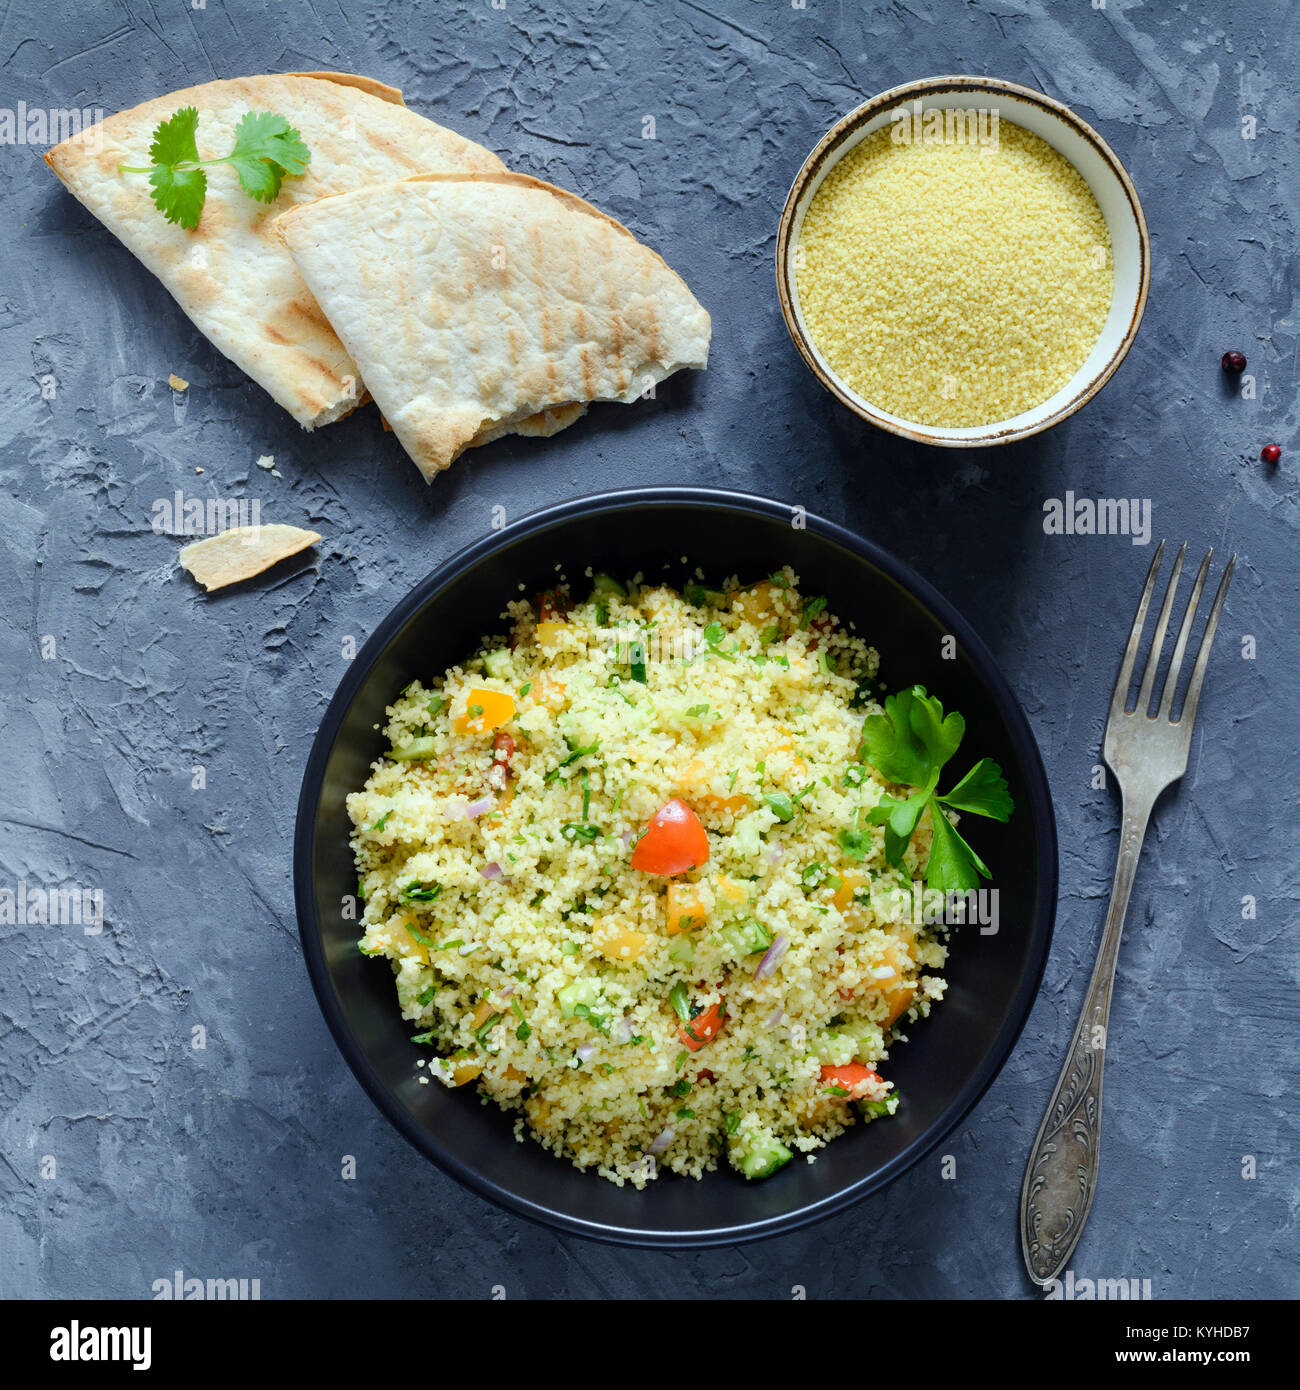 Tabbouleh salad and flatbread on concrete background. Lebanese, arabic cuisine. Healthy vegan cous cous salad in - Stock Image